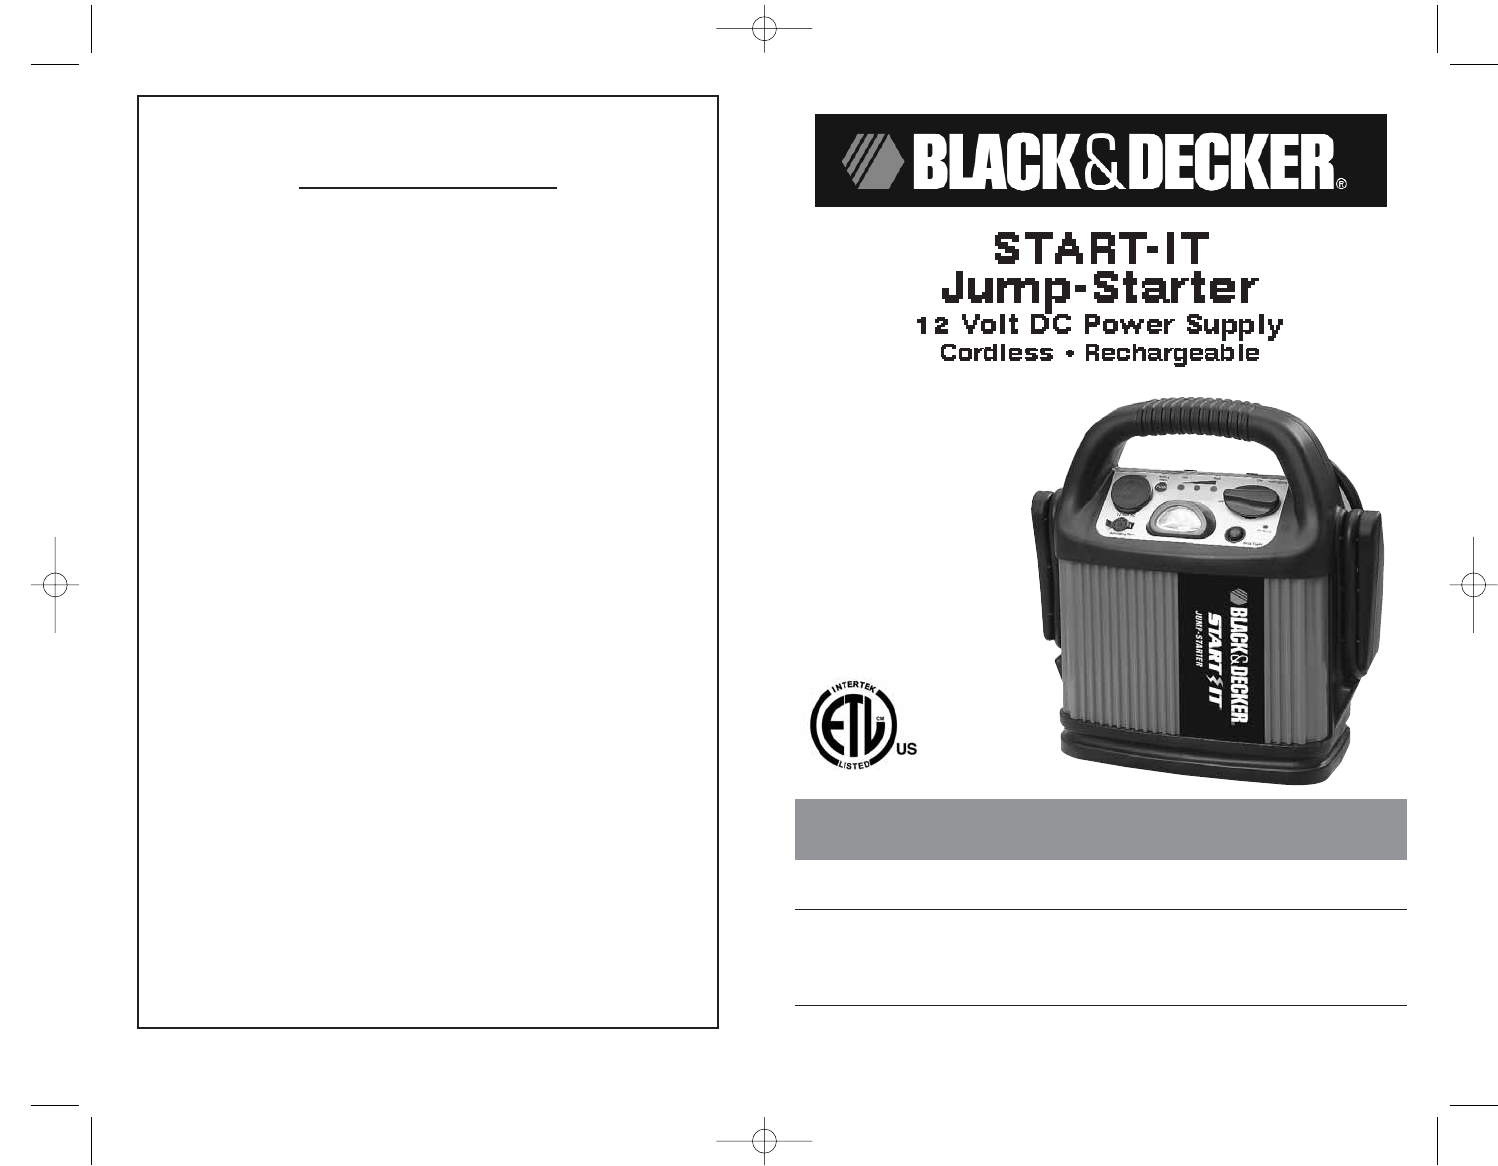 Forum posts besides Promaster City also 41934545 additionally Vw Jetta Vr6 2 8l Mk3 Tuning Myvr6 Org Removing also 32so5 98 E350 Super Duty 15 Pass Van Driver Door Will. on keyless light switch